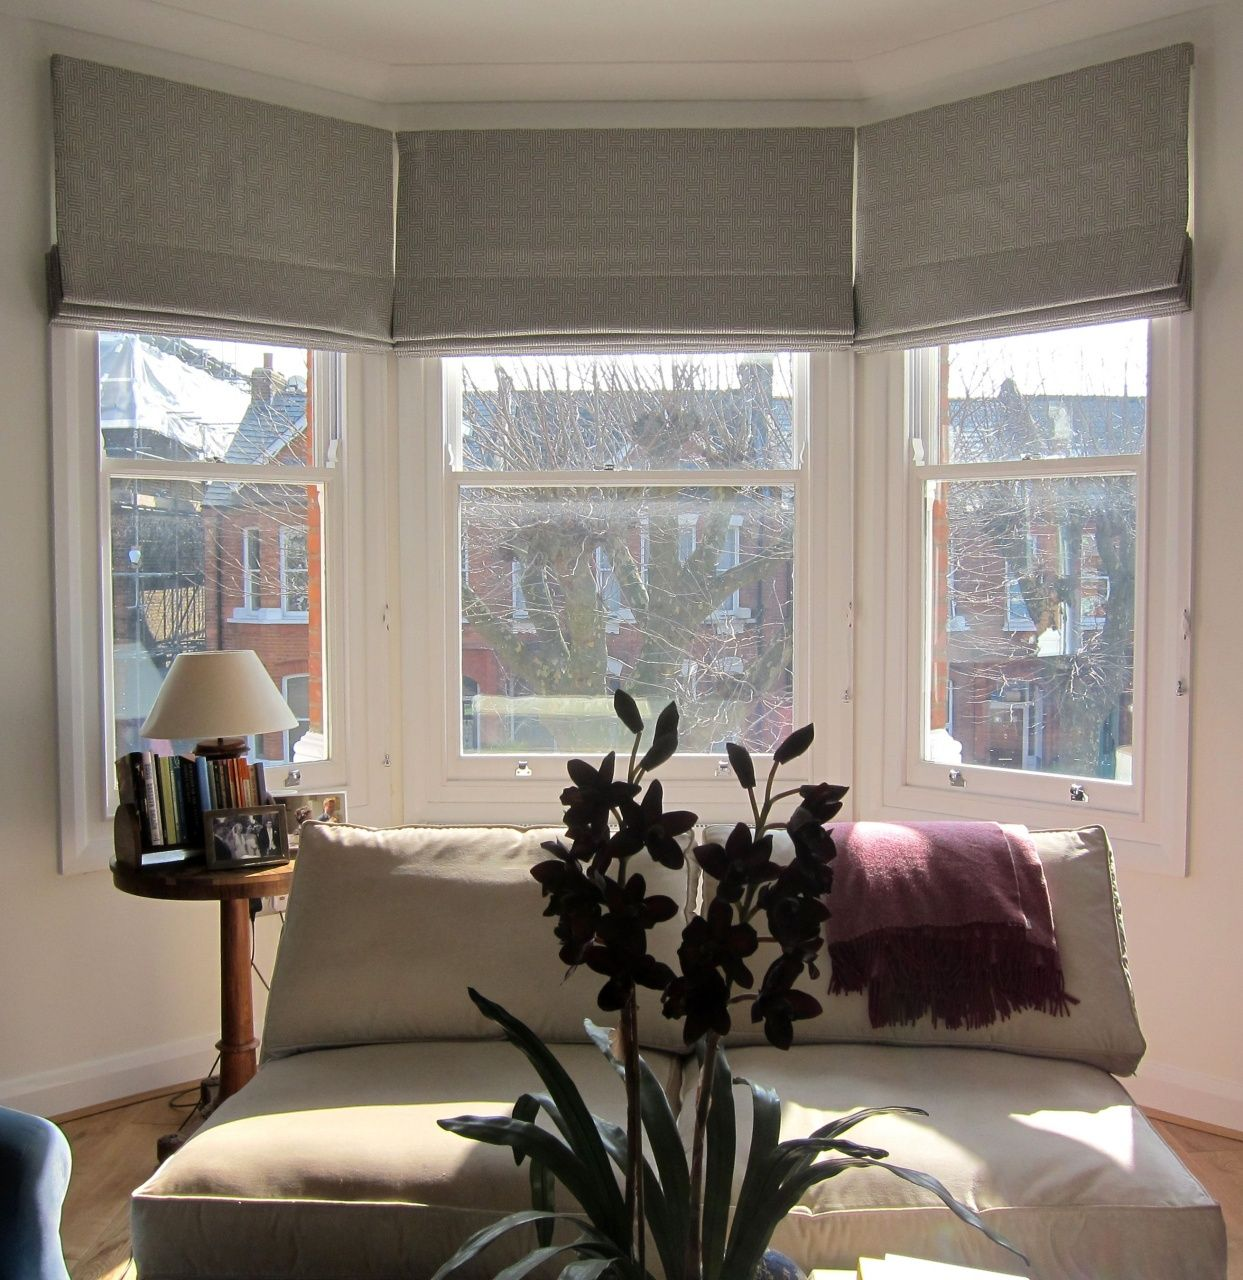 Blinds For High Ceiling Windows In 2020 Roman Blinds Living Room Bay Window Living Room Curtains With Blinds